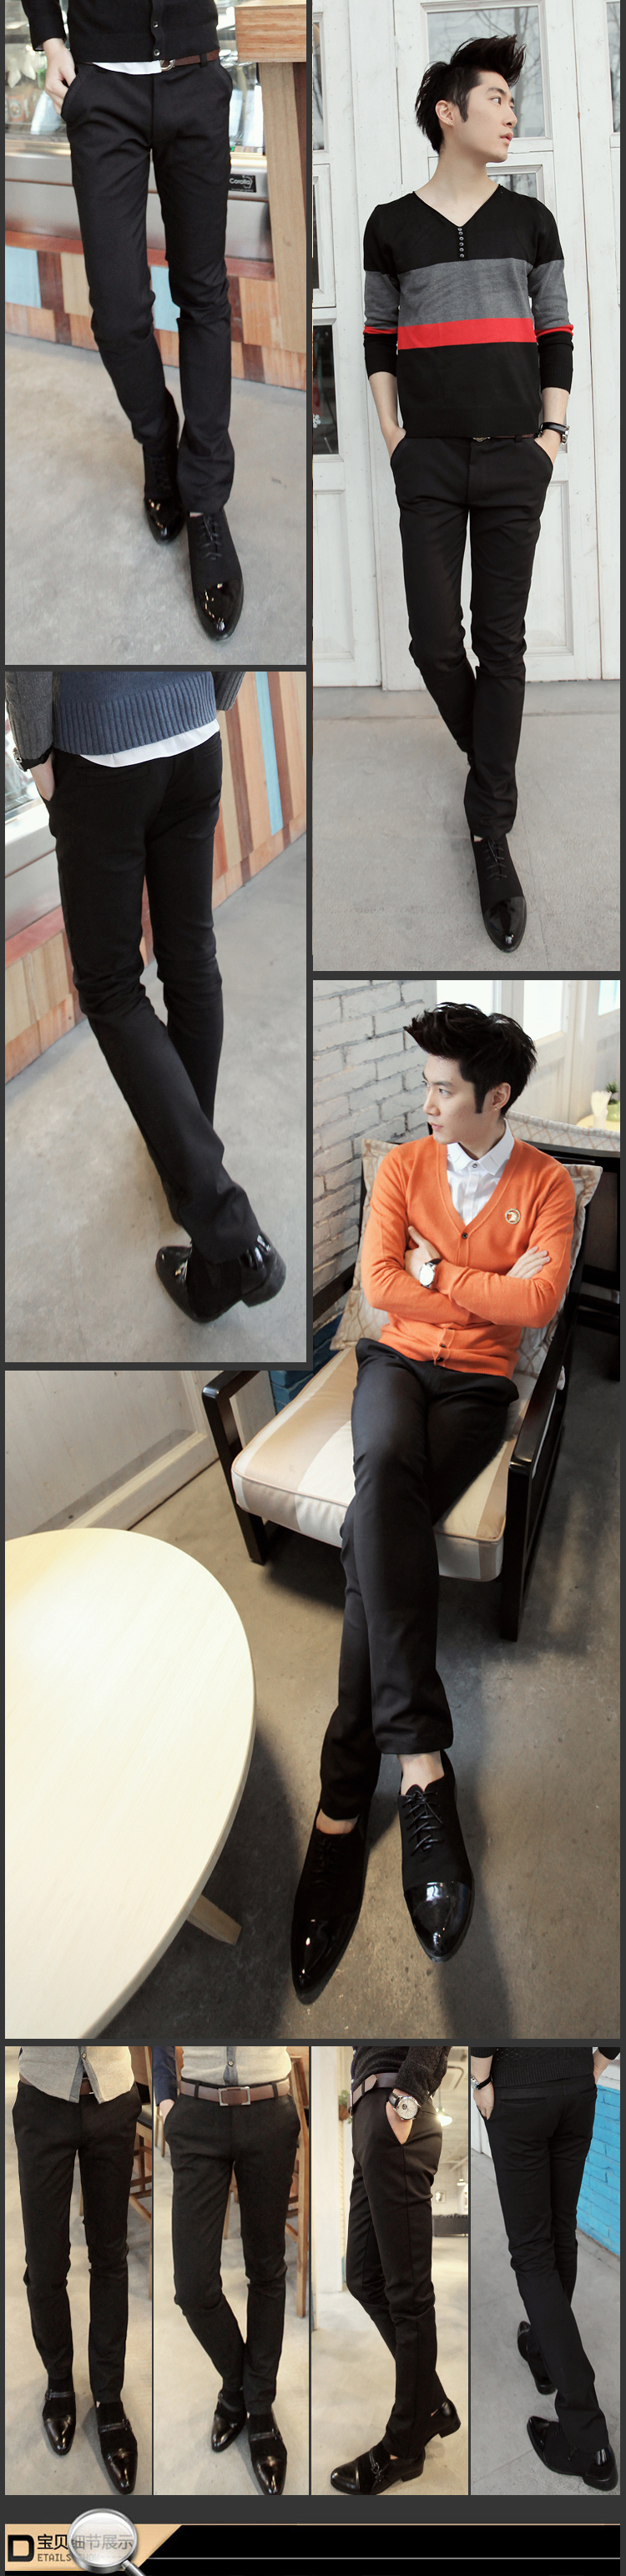 Sir7 Autumn Korean Slim Men's casual pants feet pants pants influx of men's pants straight trousers Ying Lun Halun